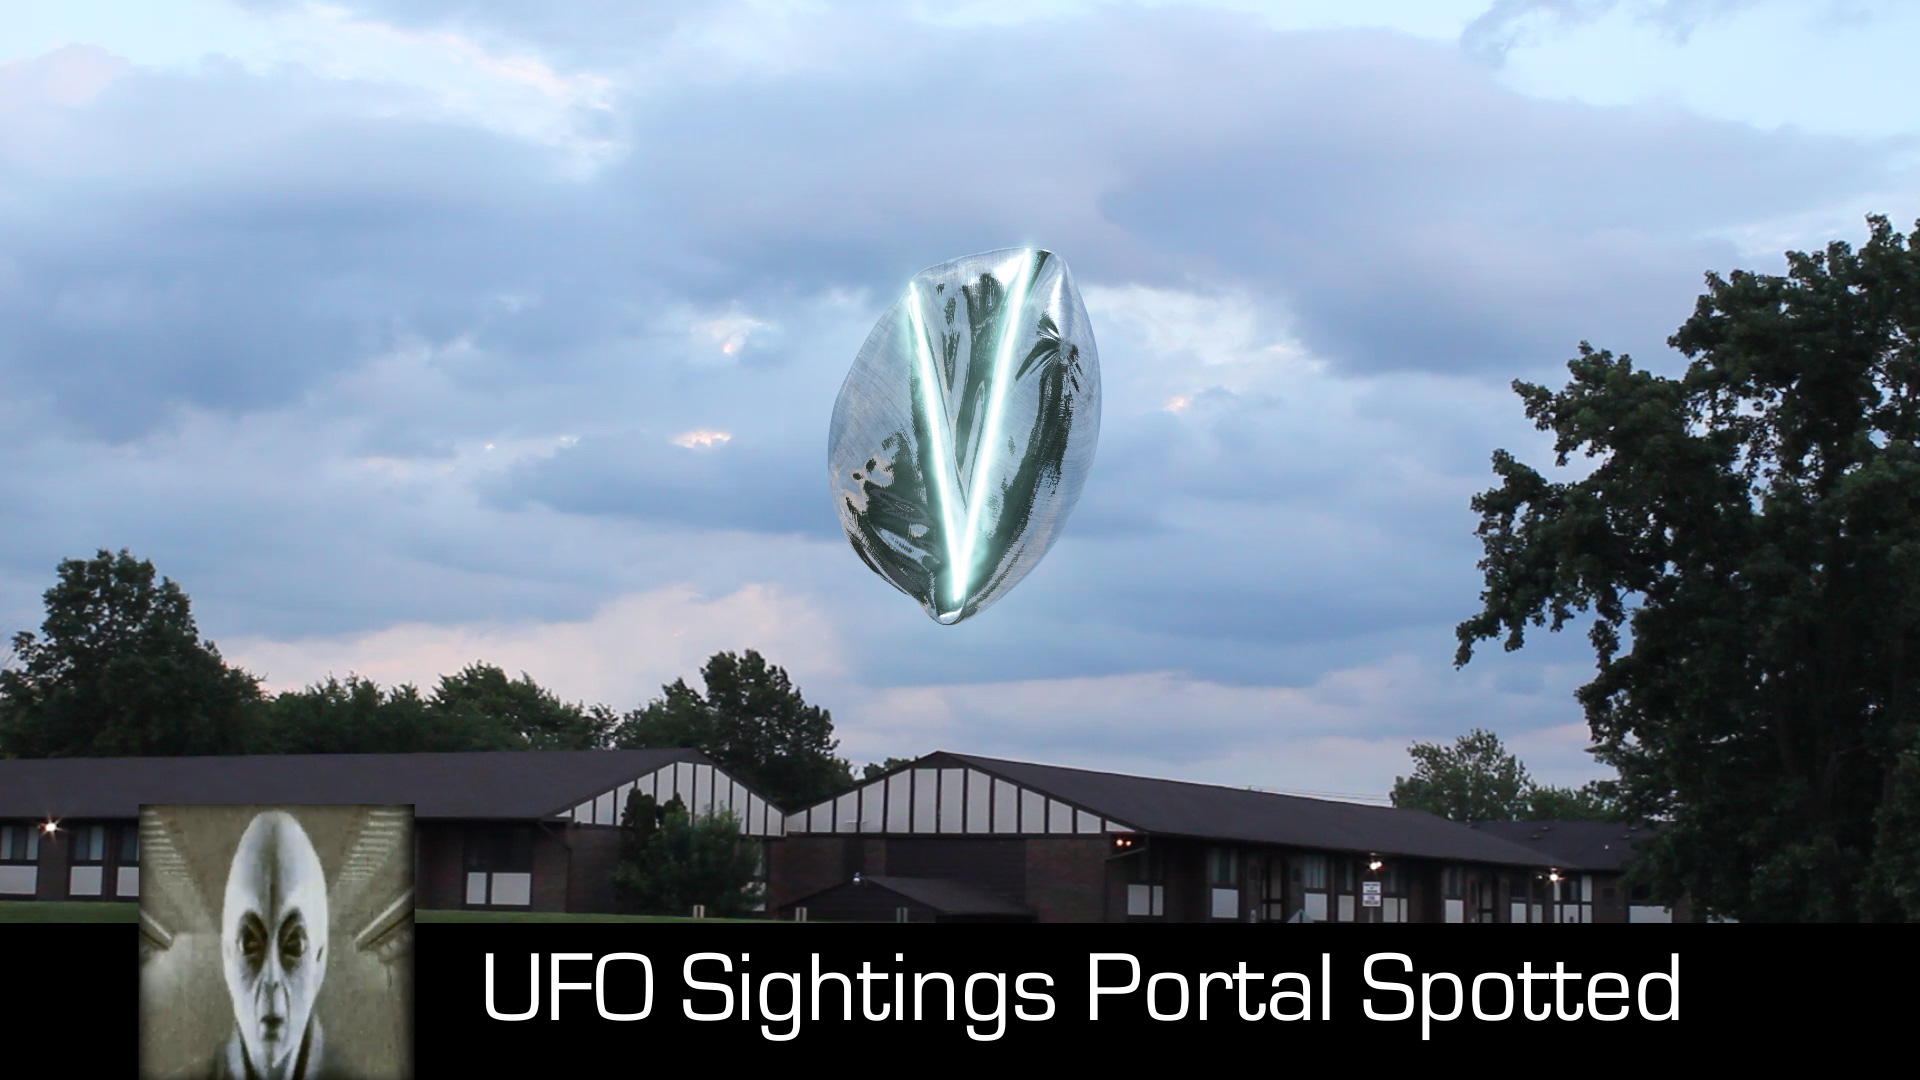 UFO Sightings Possible Portal Spotted August 27th 2017